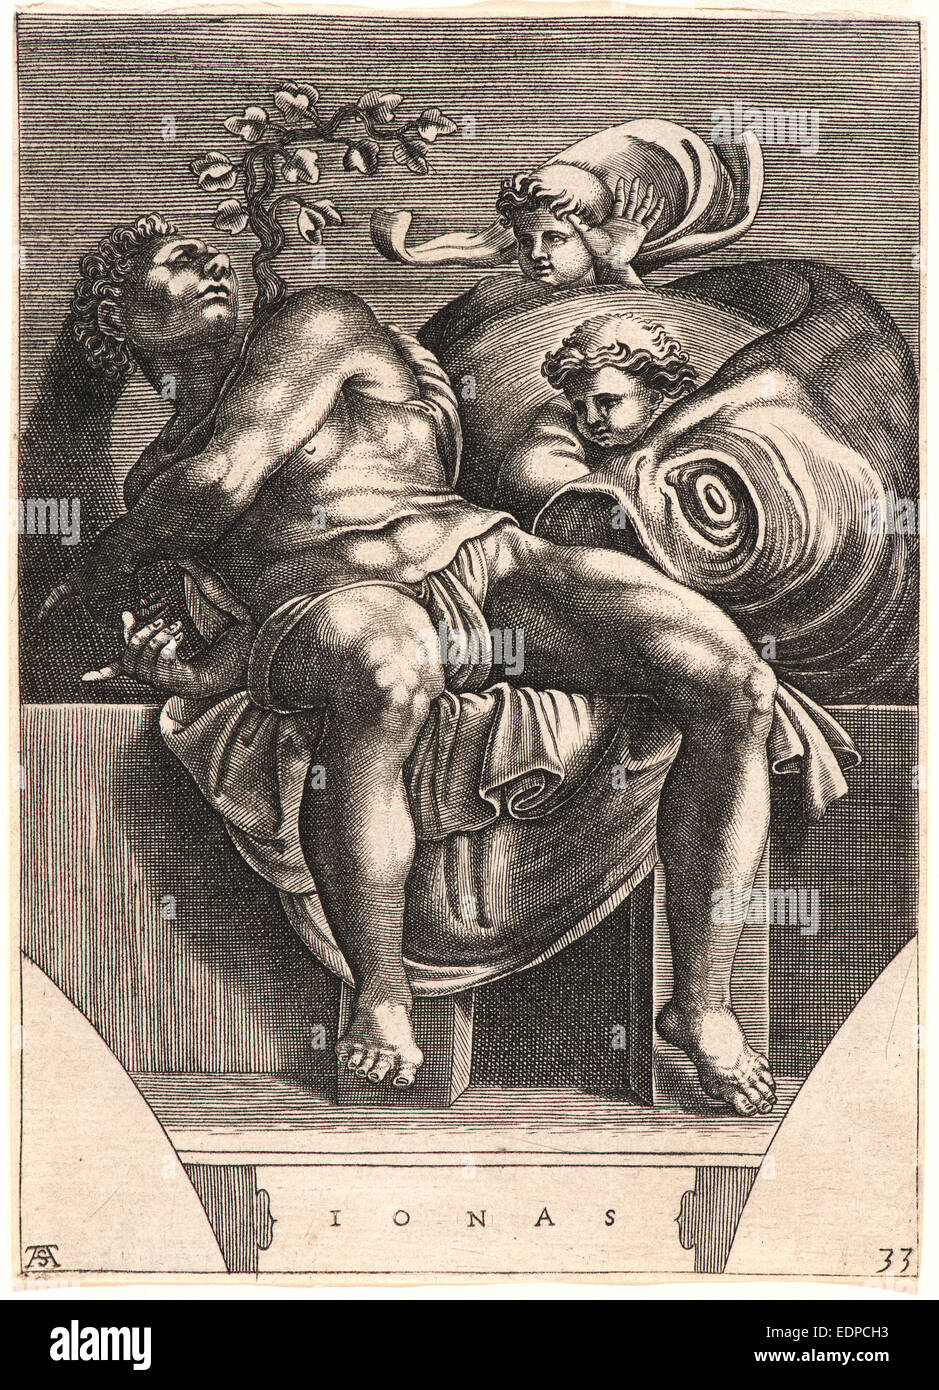 Michelangelo Buonarroti (Italian, 1475 - 1564). The Prophet Jonah, late  16th century. Engraving on laid paper